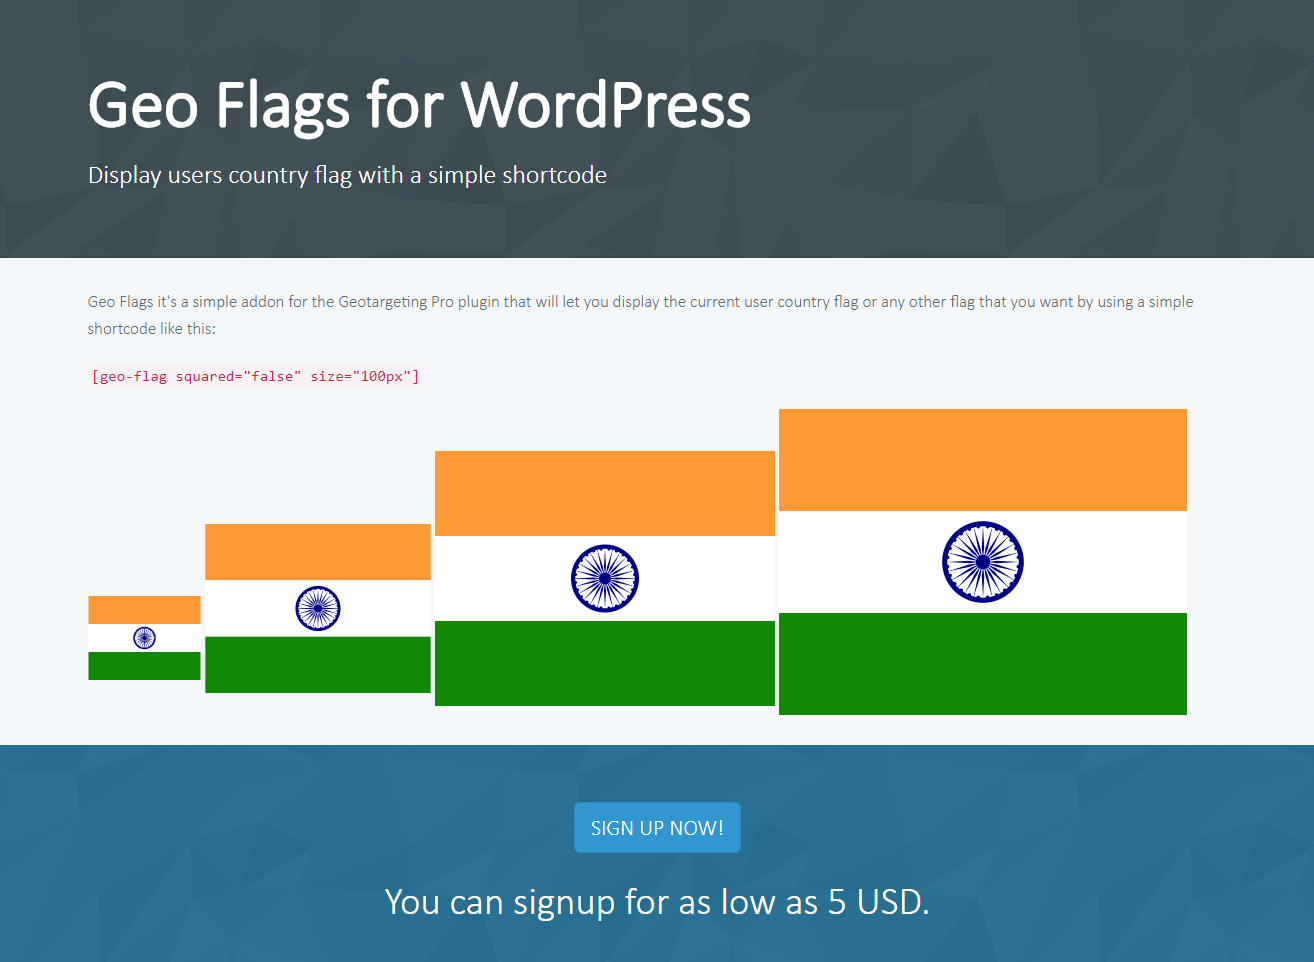 Geo Flags for WordPress